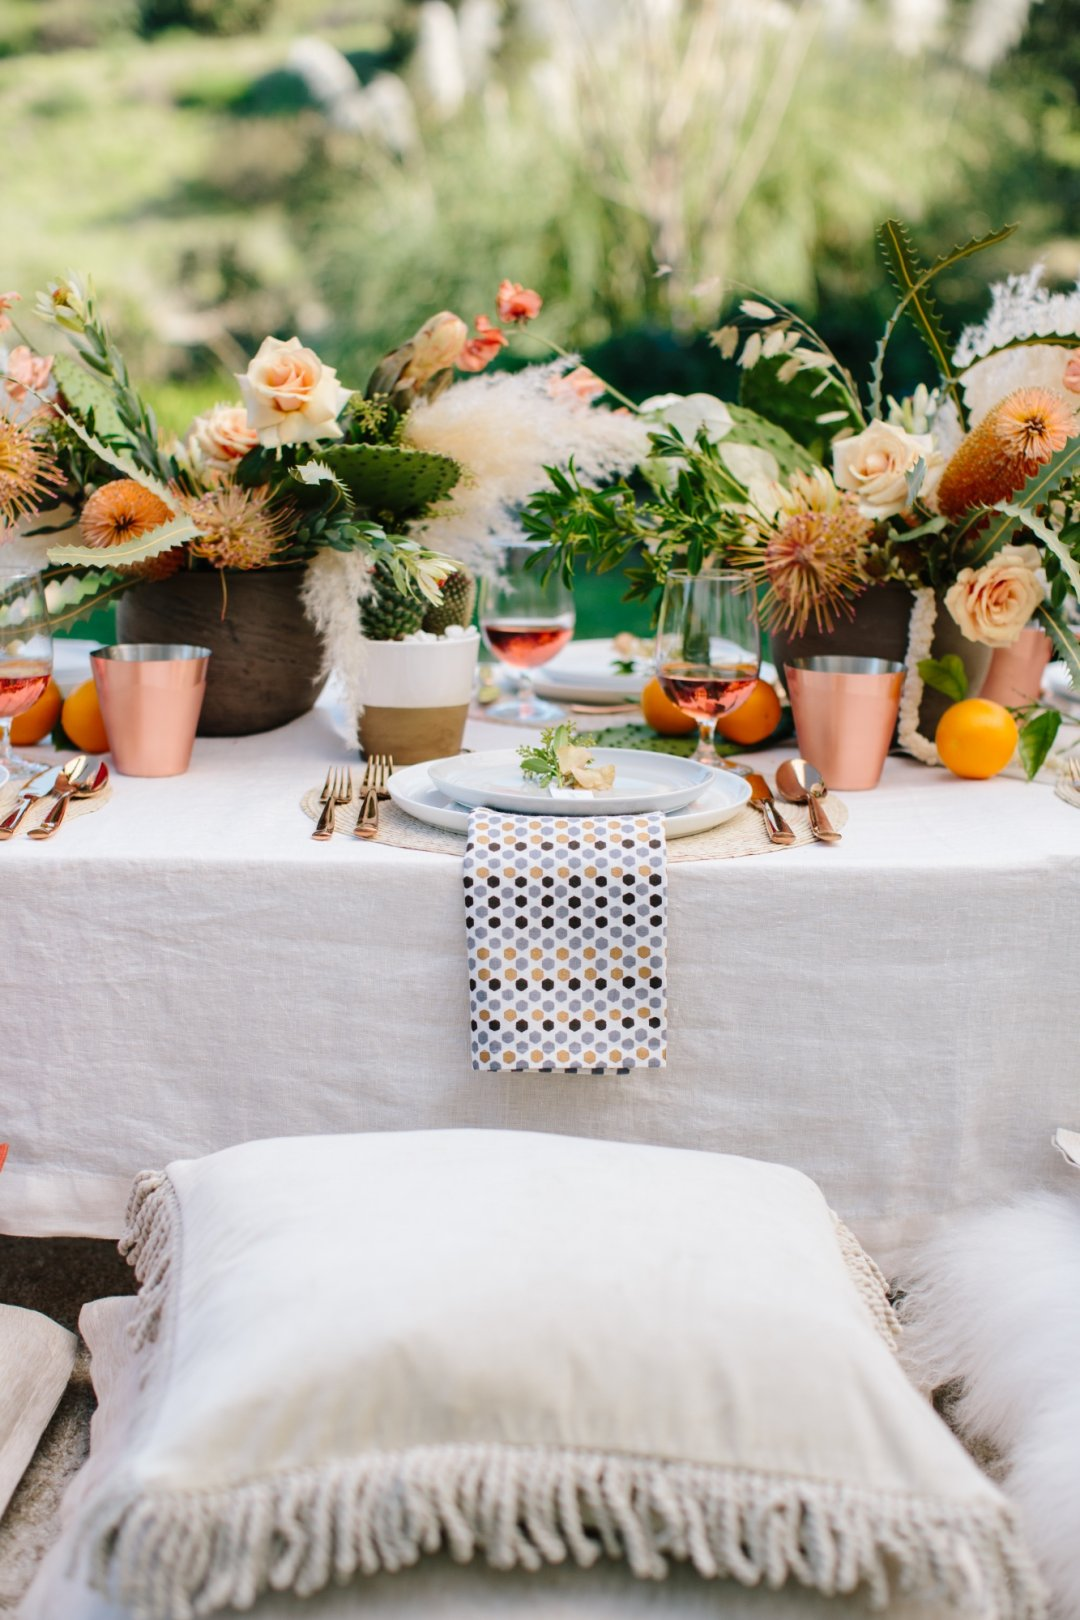 One place at table setting with pillow below